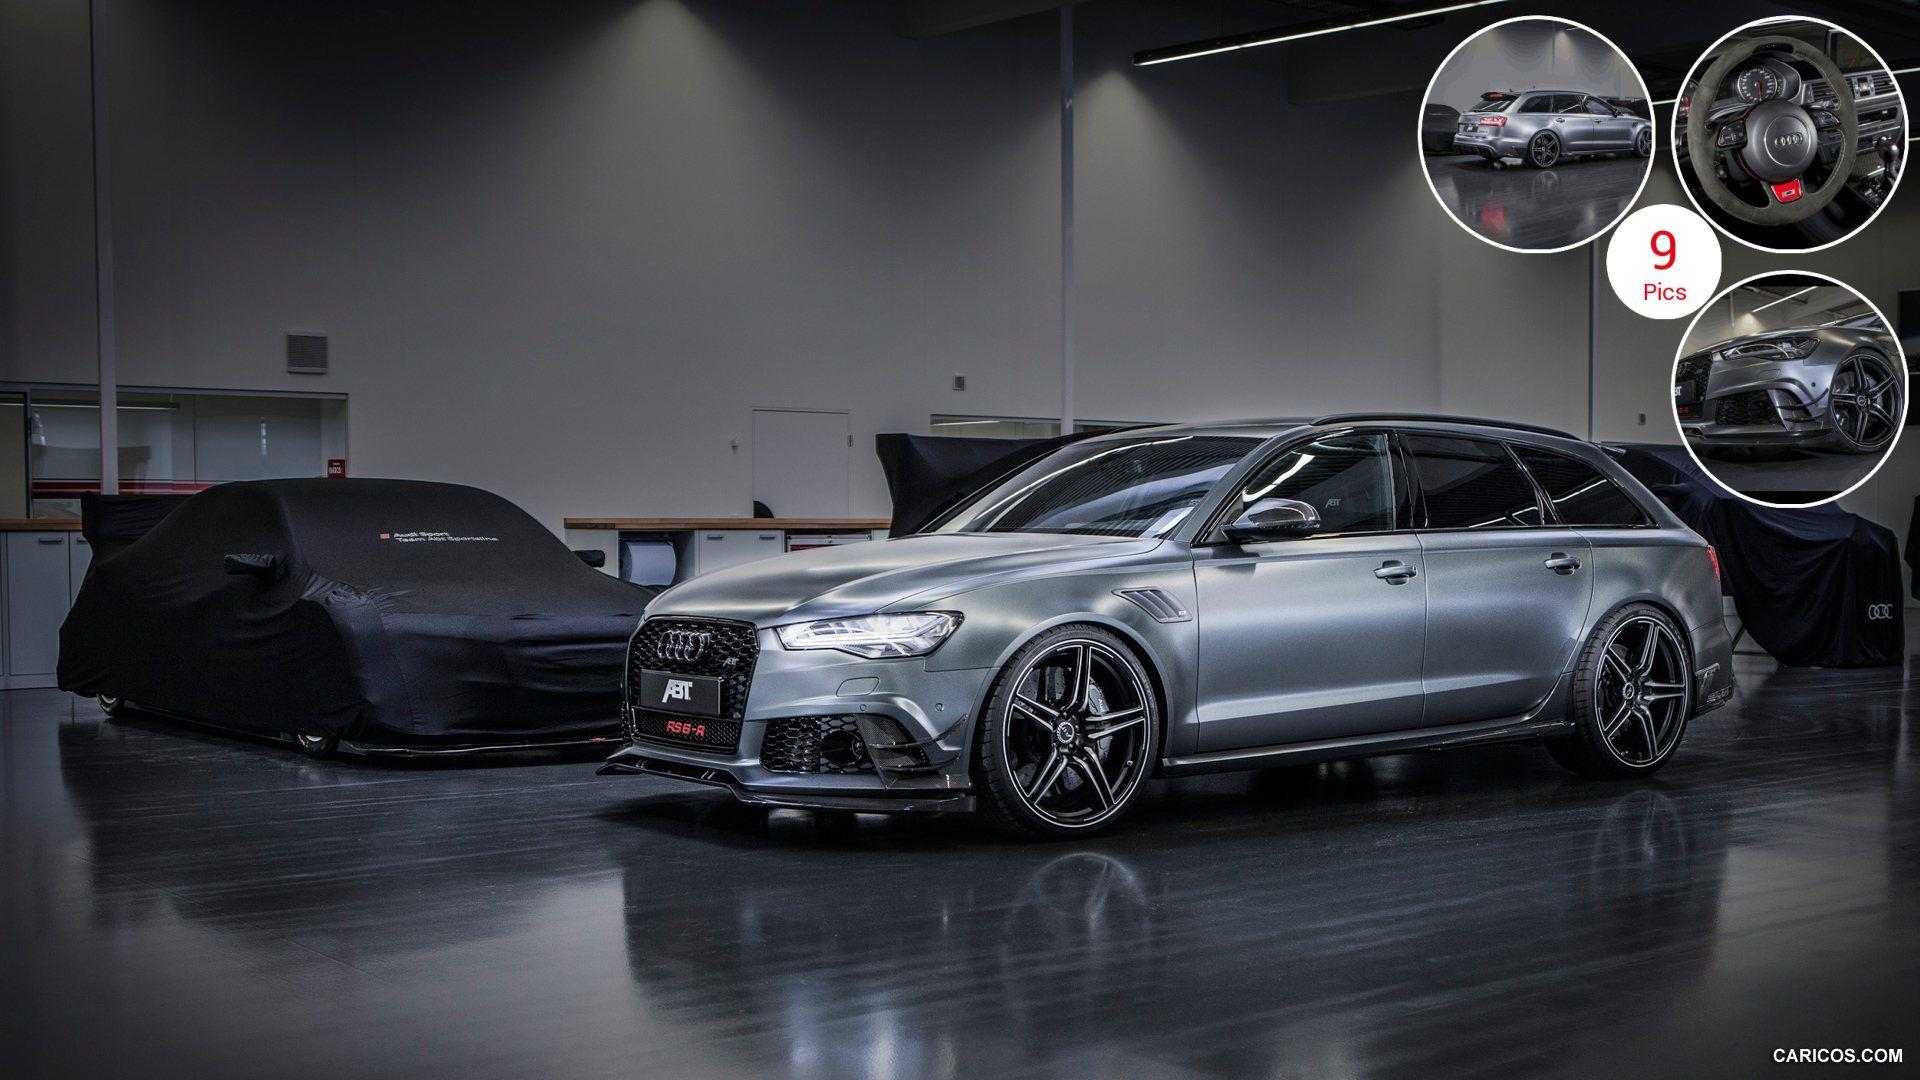 2015 ABT RS6-R based on Audi RS6 - Front | HD Wallpaper #1